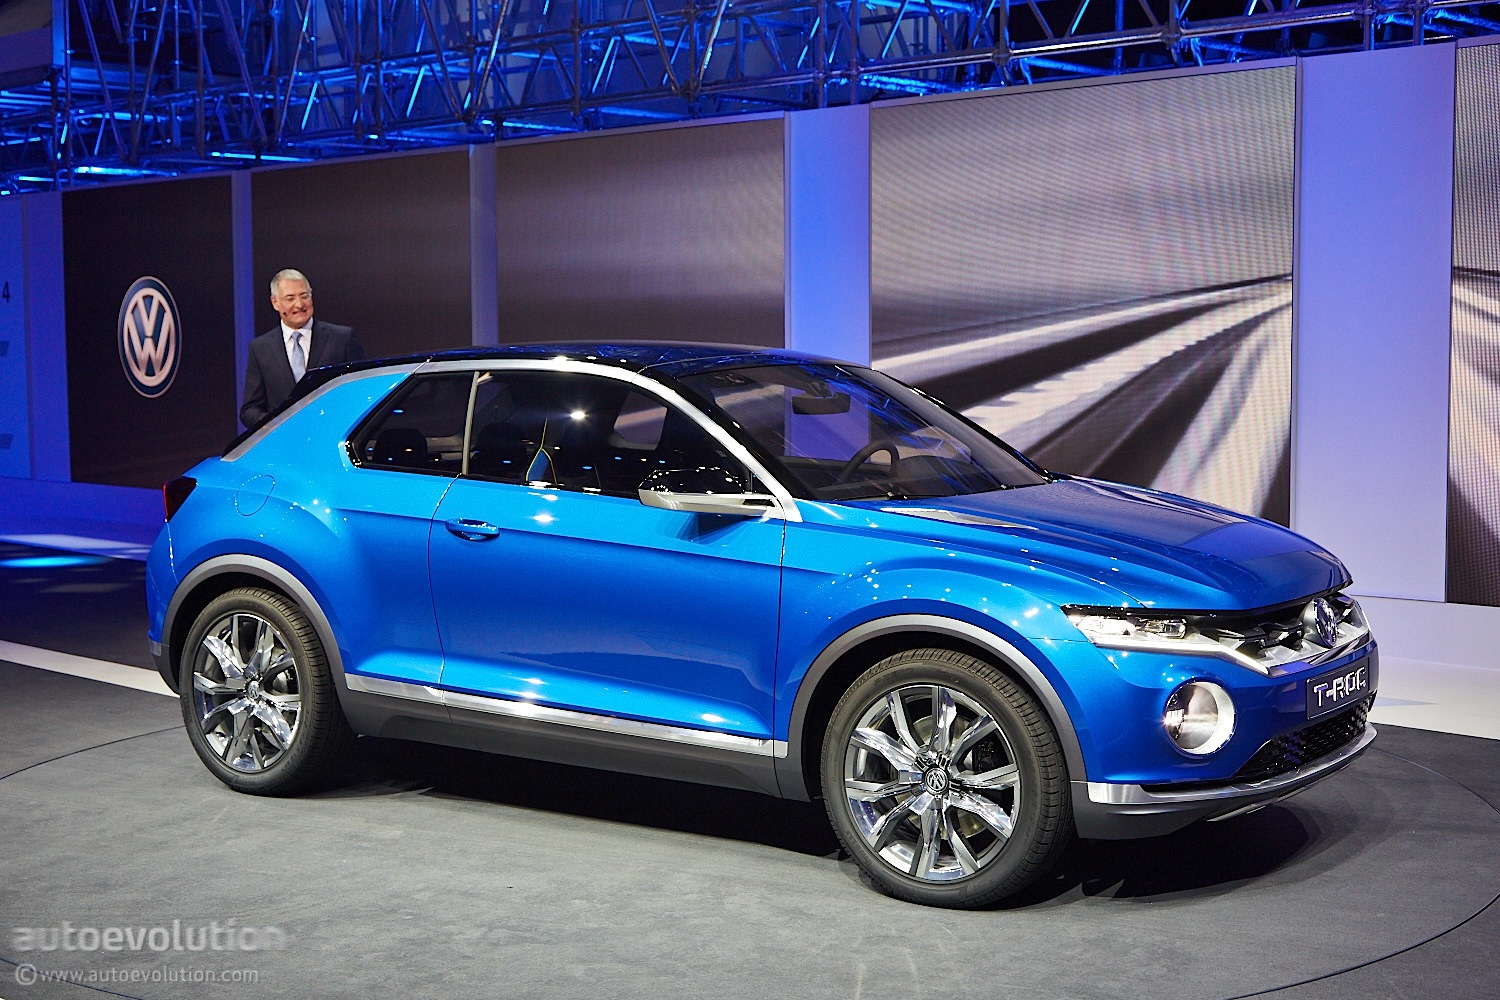 Volkswagen T-Roc Concept Hints at Future Crossover [Live Photos] - autoevolution